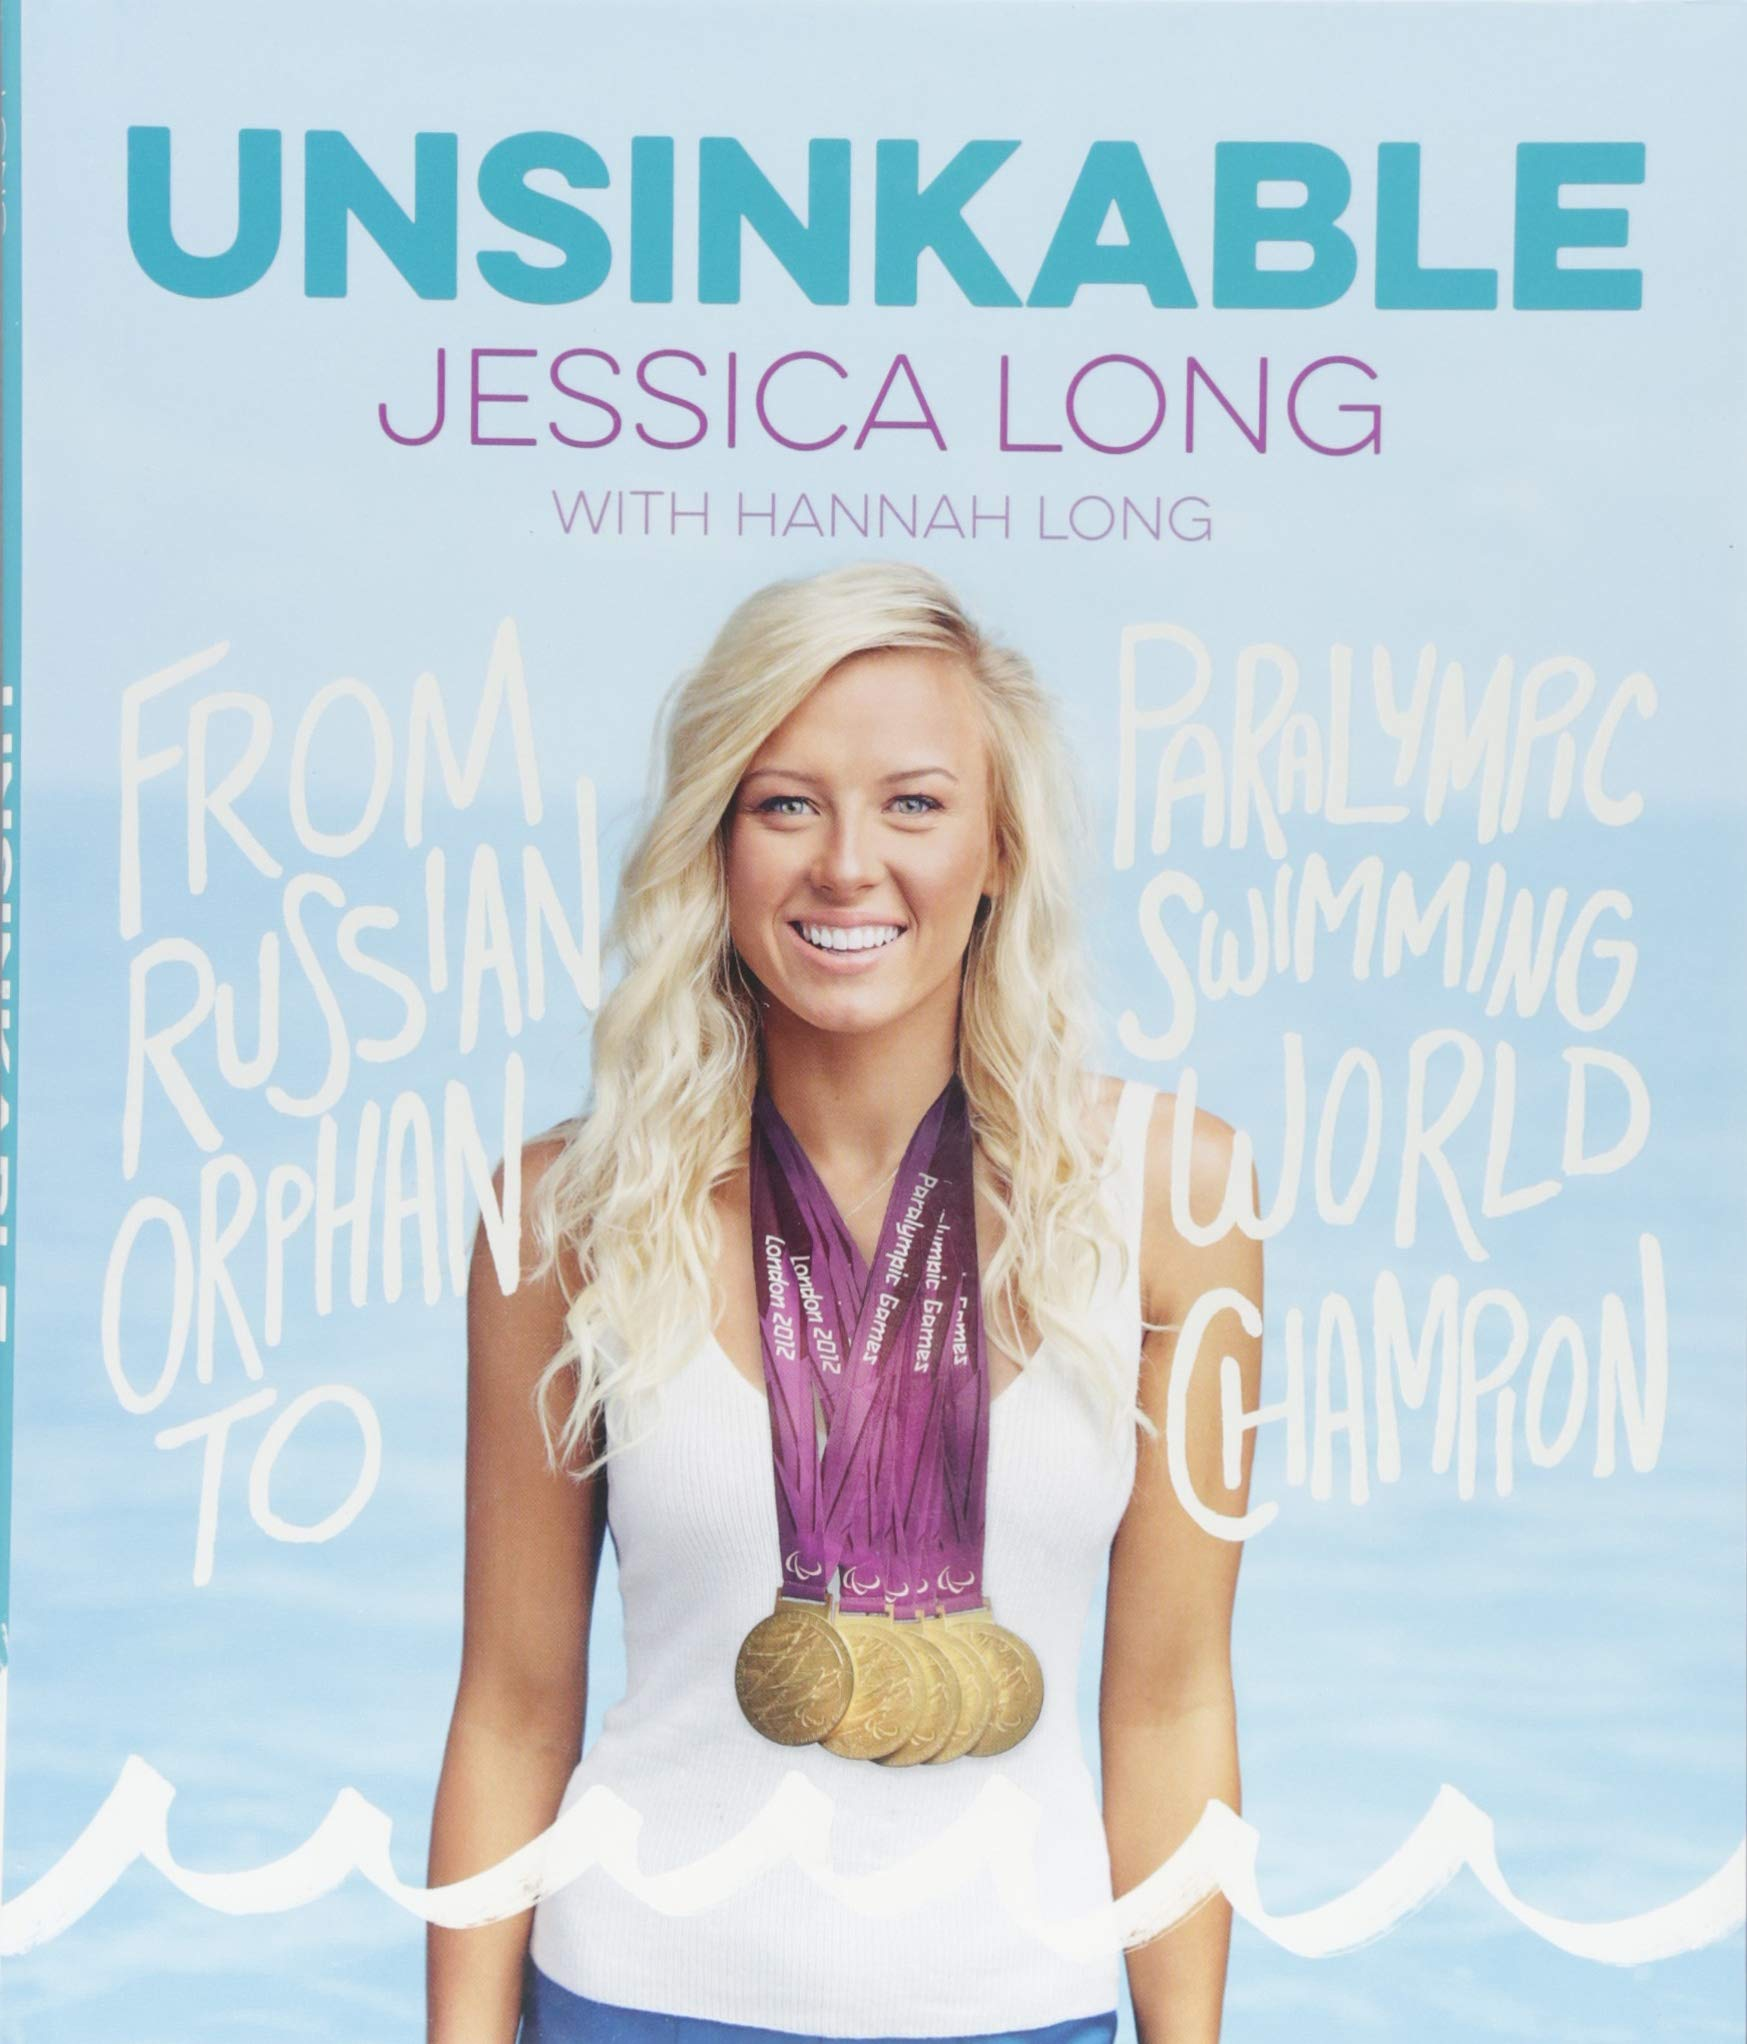 Unsinkable: From Russian Orphan to Paralympic Swimming World Champion PDF